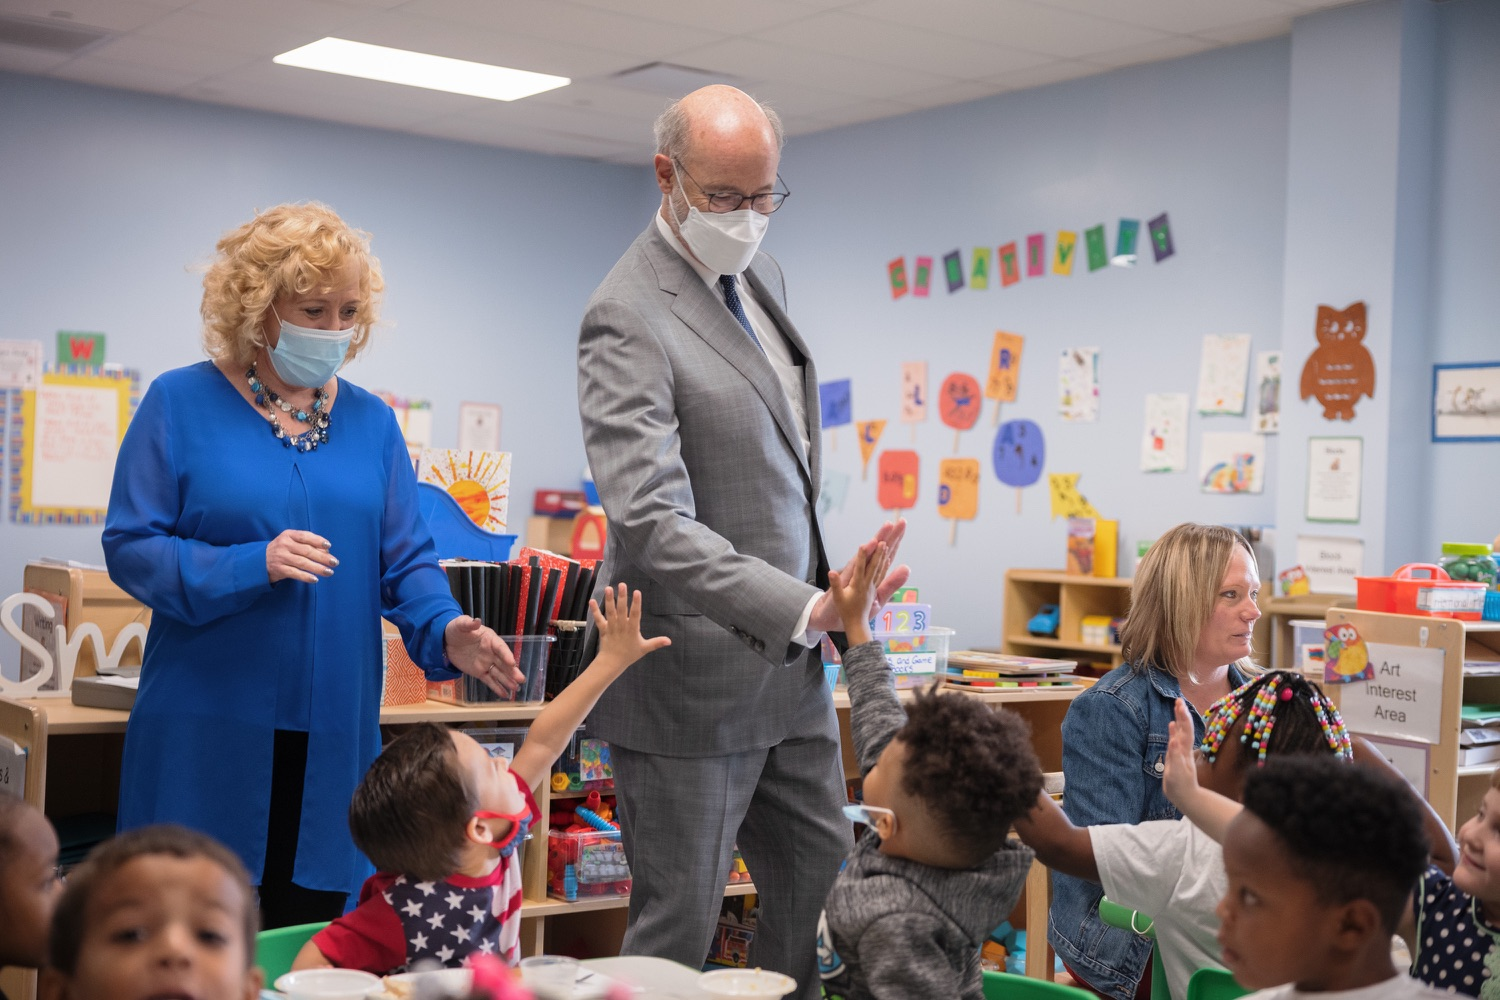 """<a href=""""https://filesource.wostreaming.net/commonwealthofpa/photo/20139_gov_childcare_dz_023.jpg"""" target=""""_blank"""">⇣Download Photo<br></a>Pennsylvania Governor Tom Wolf and Rina Irwin, CEO, Child Development Centers taking a tour of the Gilson Child Development Center.  Governor Tom Wolf today visited Gilson Child Development Center in Erie to celebrate the $30 million increase in state funding to expand early childhood learning to more than 3,200 additional young children and the $655 million available in federal funding to stabilize childcare providers during the pandemic.  Erie, PA  October 12, 2021"""